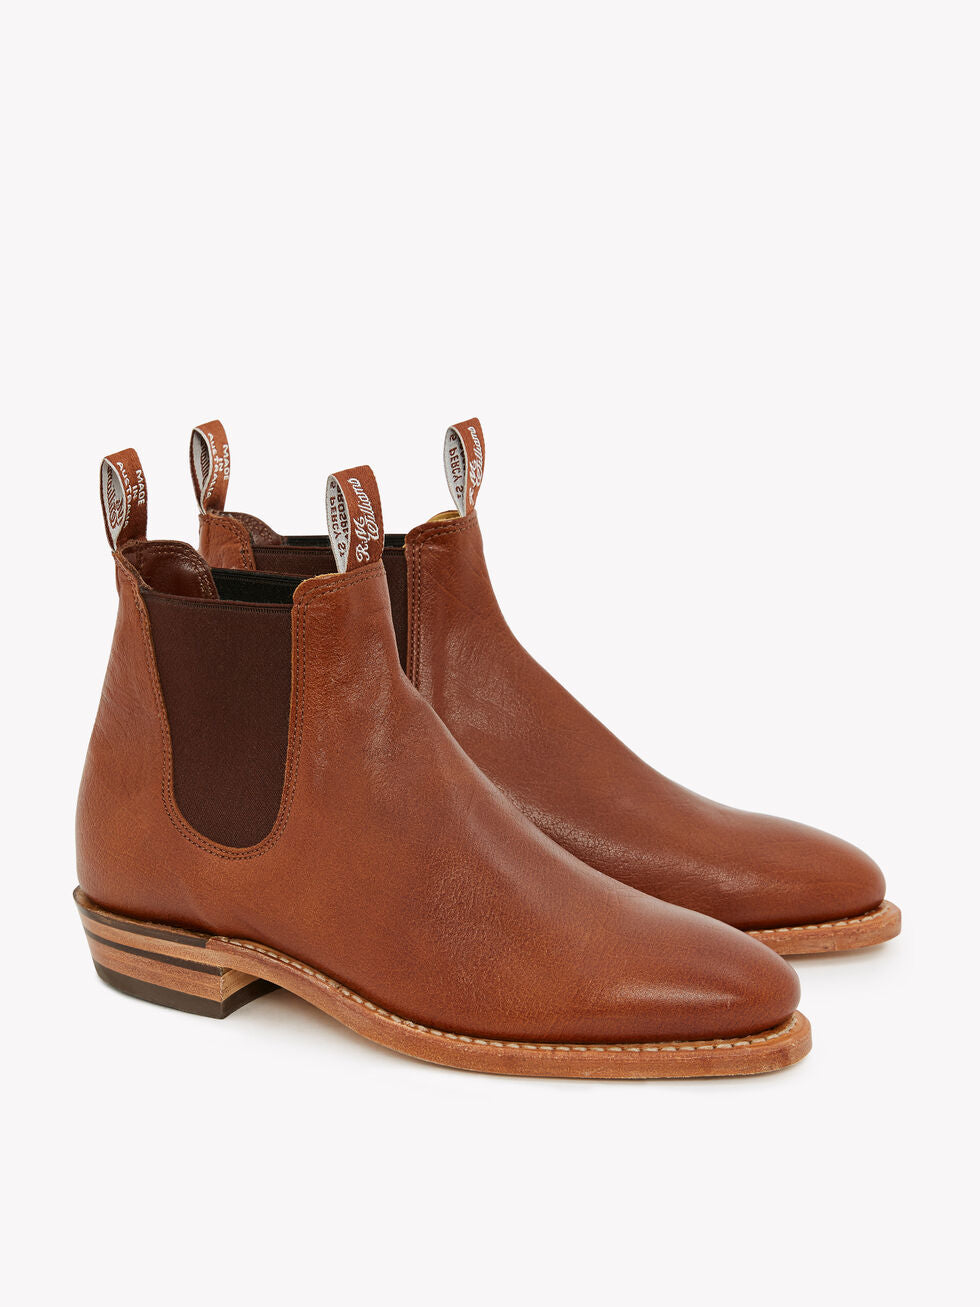 RM Williams Adelaide Kangaroo Boot (4498592170121)